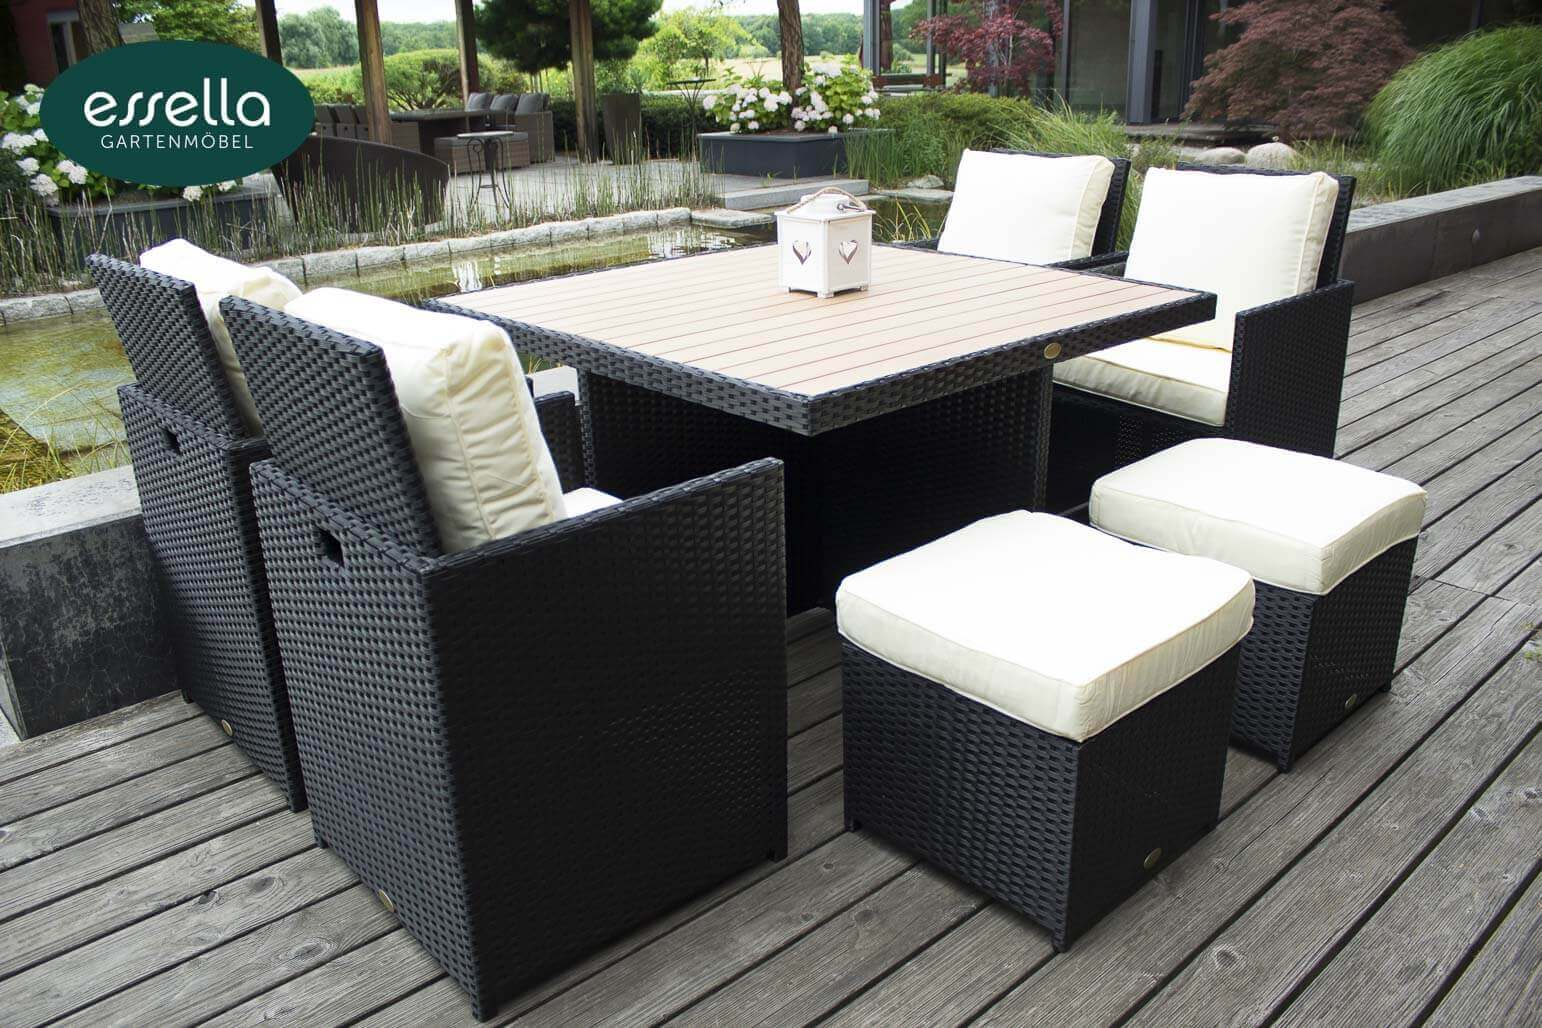 essella polyrattan sitzgruppe vienna 4 personen polywood. Black Bedroom Furniture Sets. Home Design Ideas